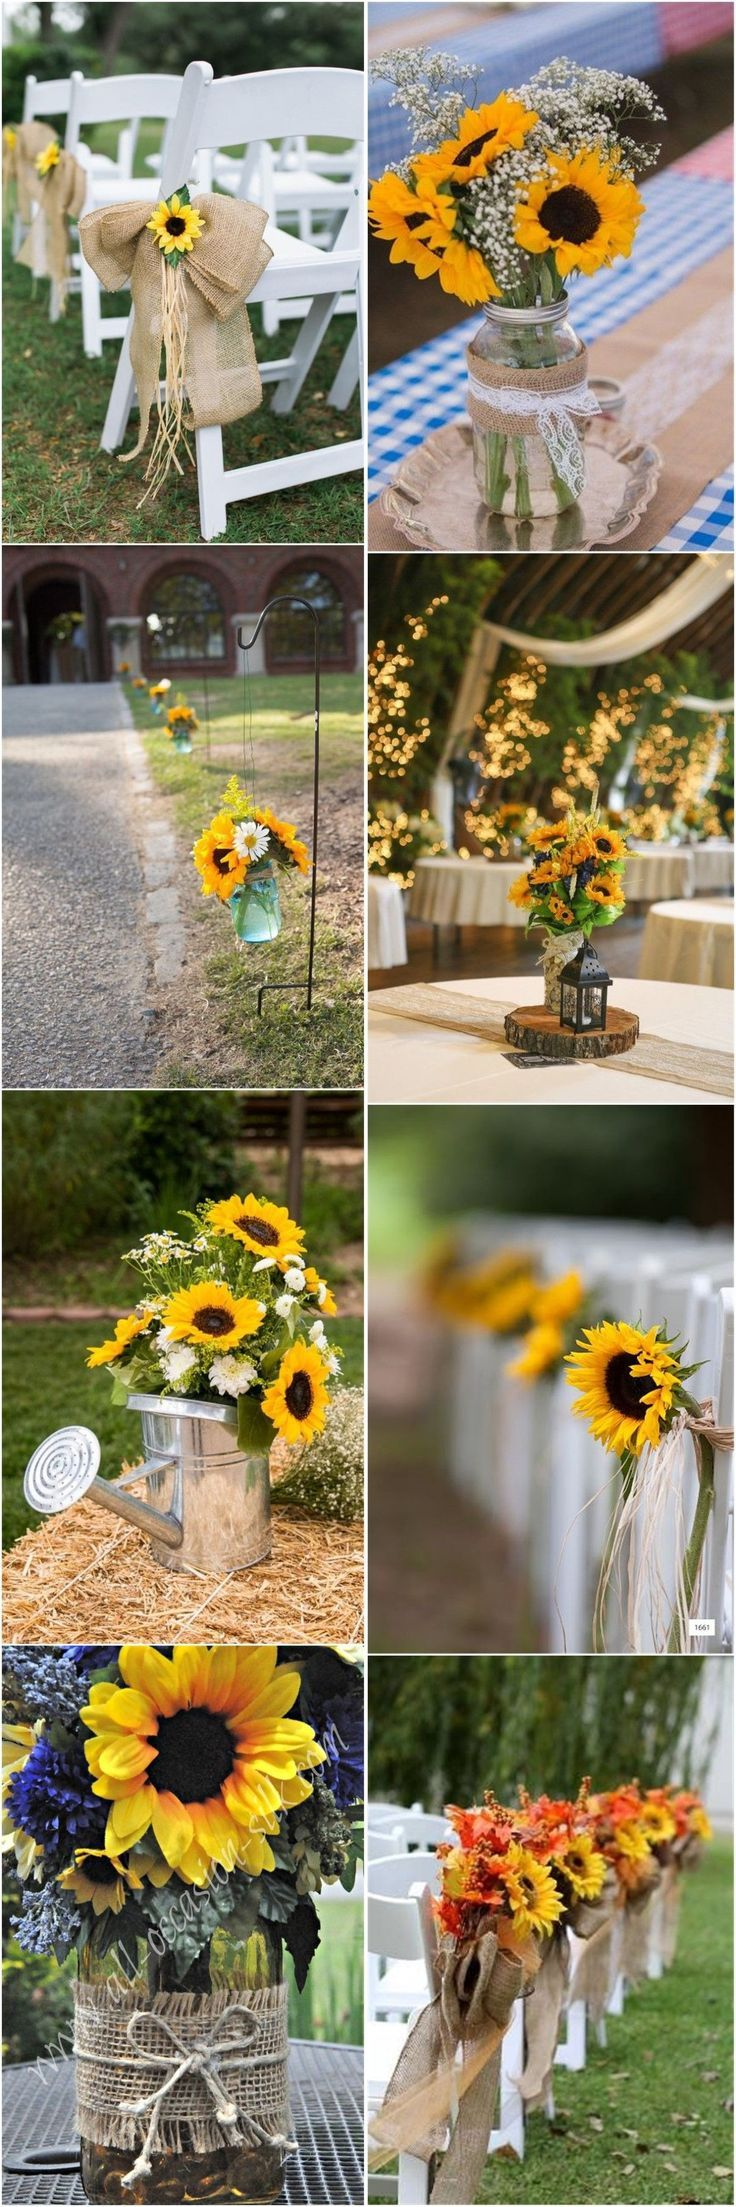 23 Bright Sunflower Wedding Decoration Ideas For Your Rustic Wedding Sunflower Wedding Decorations Sunflower Themed Wedding Rustic Sunflower Wedding